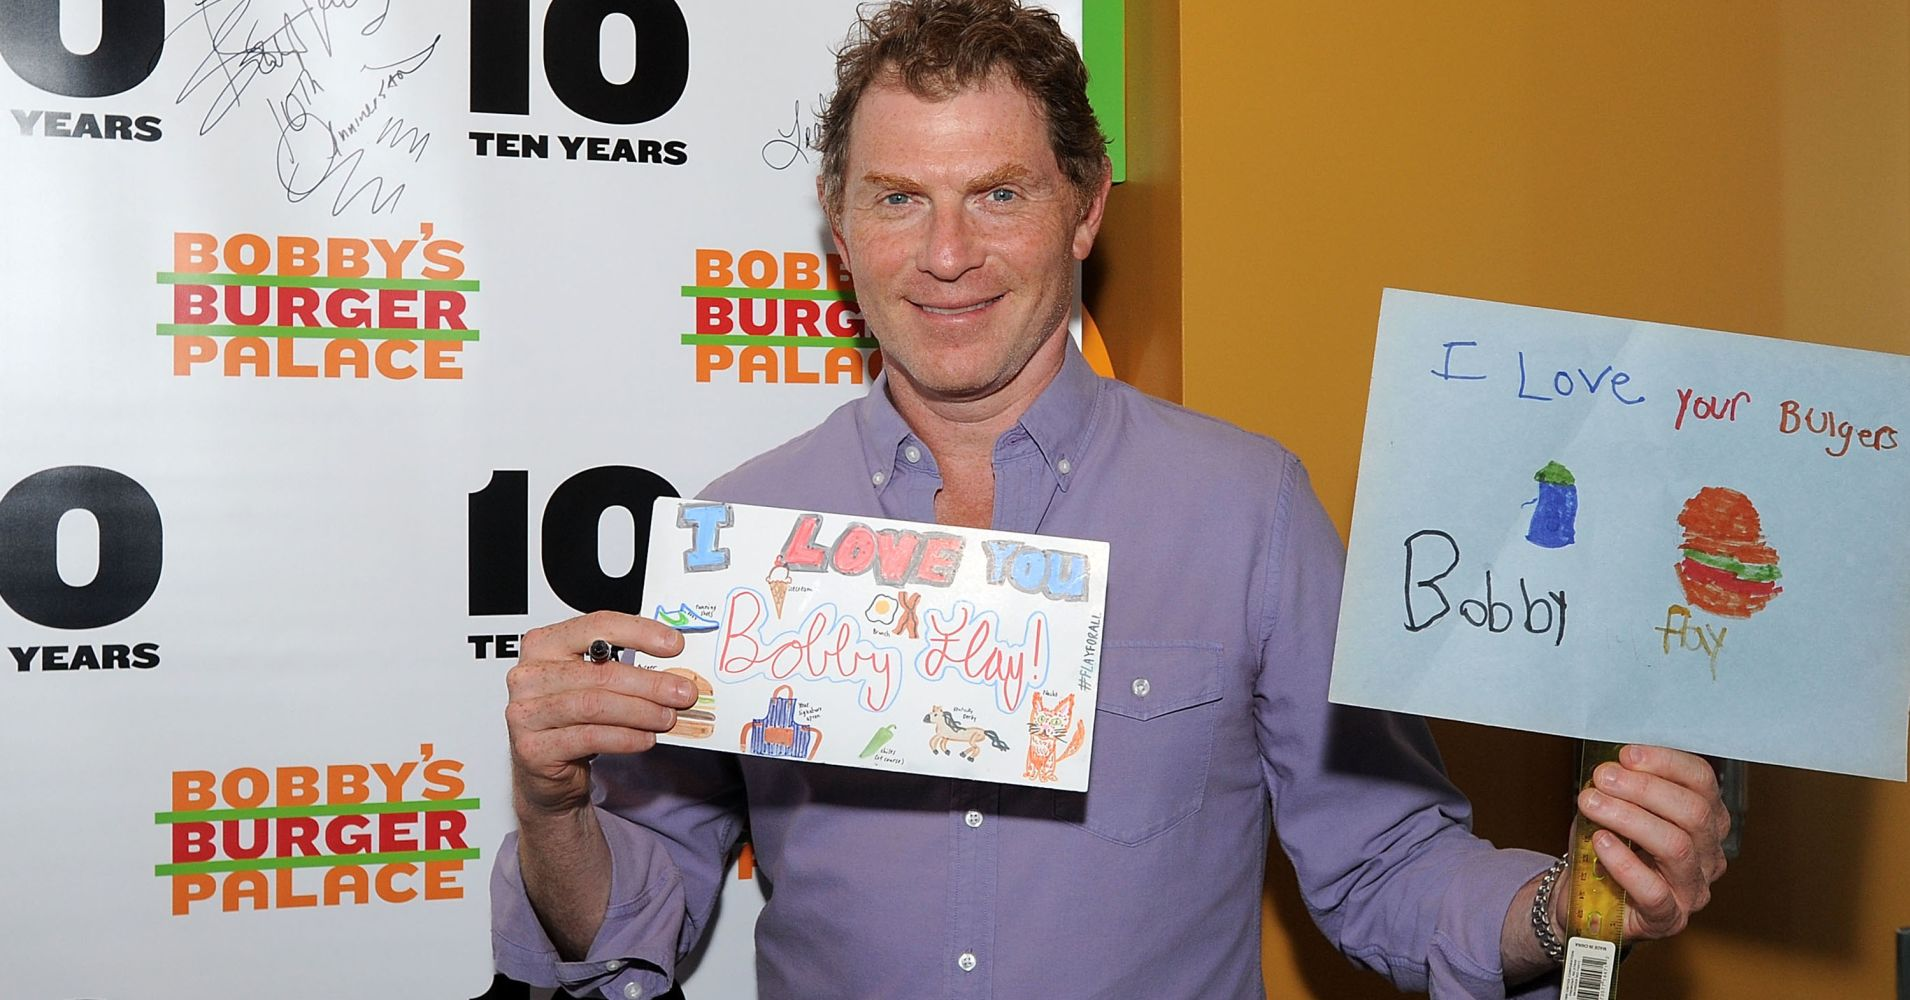 Celebrity chef Bobby Flay's No. 1 tip for opening your own restaurant